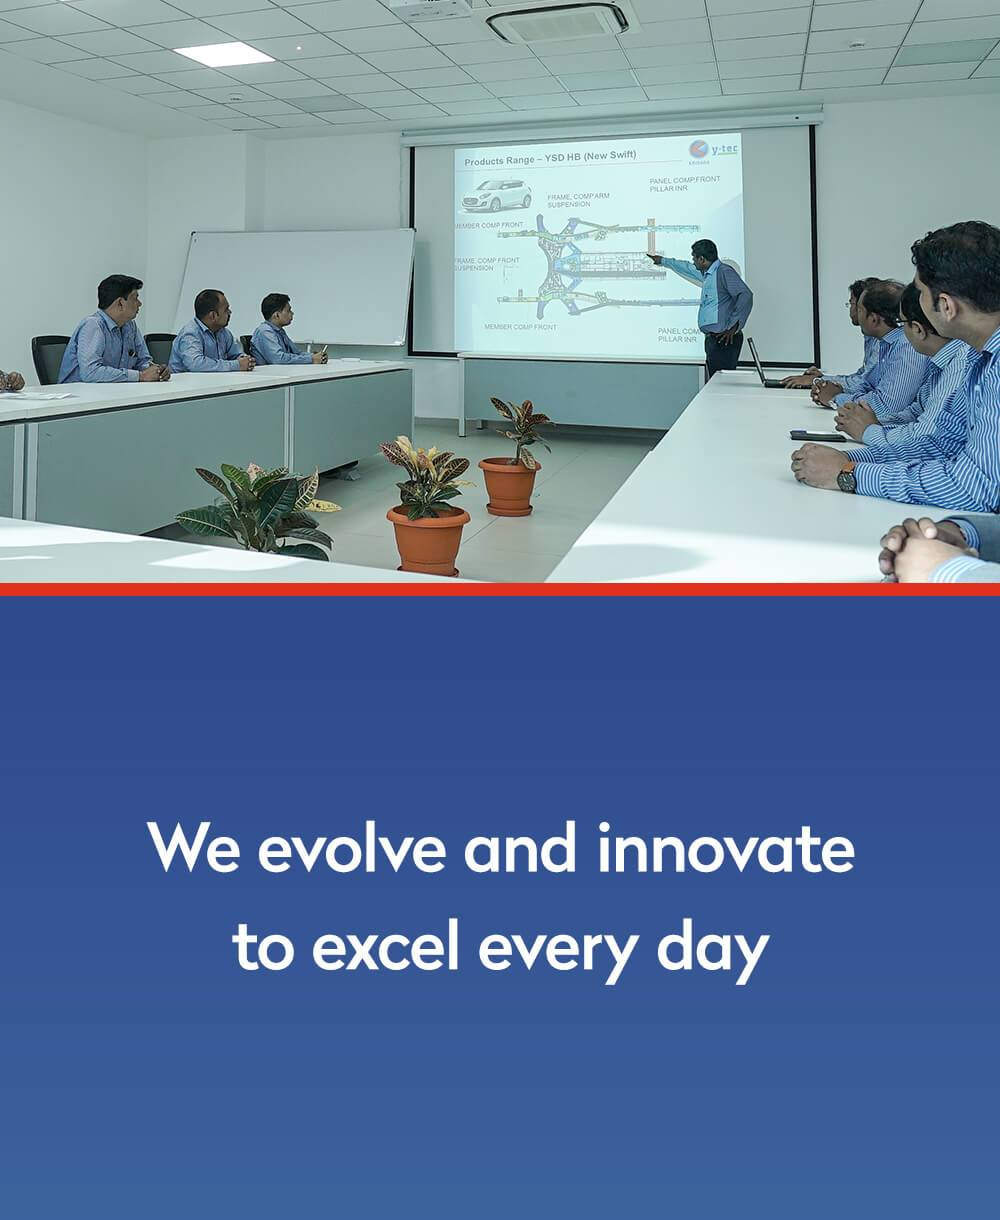 we evolve and innovate to excel every day